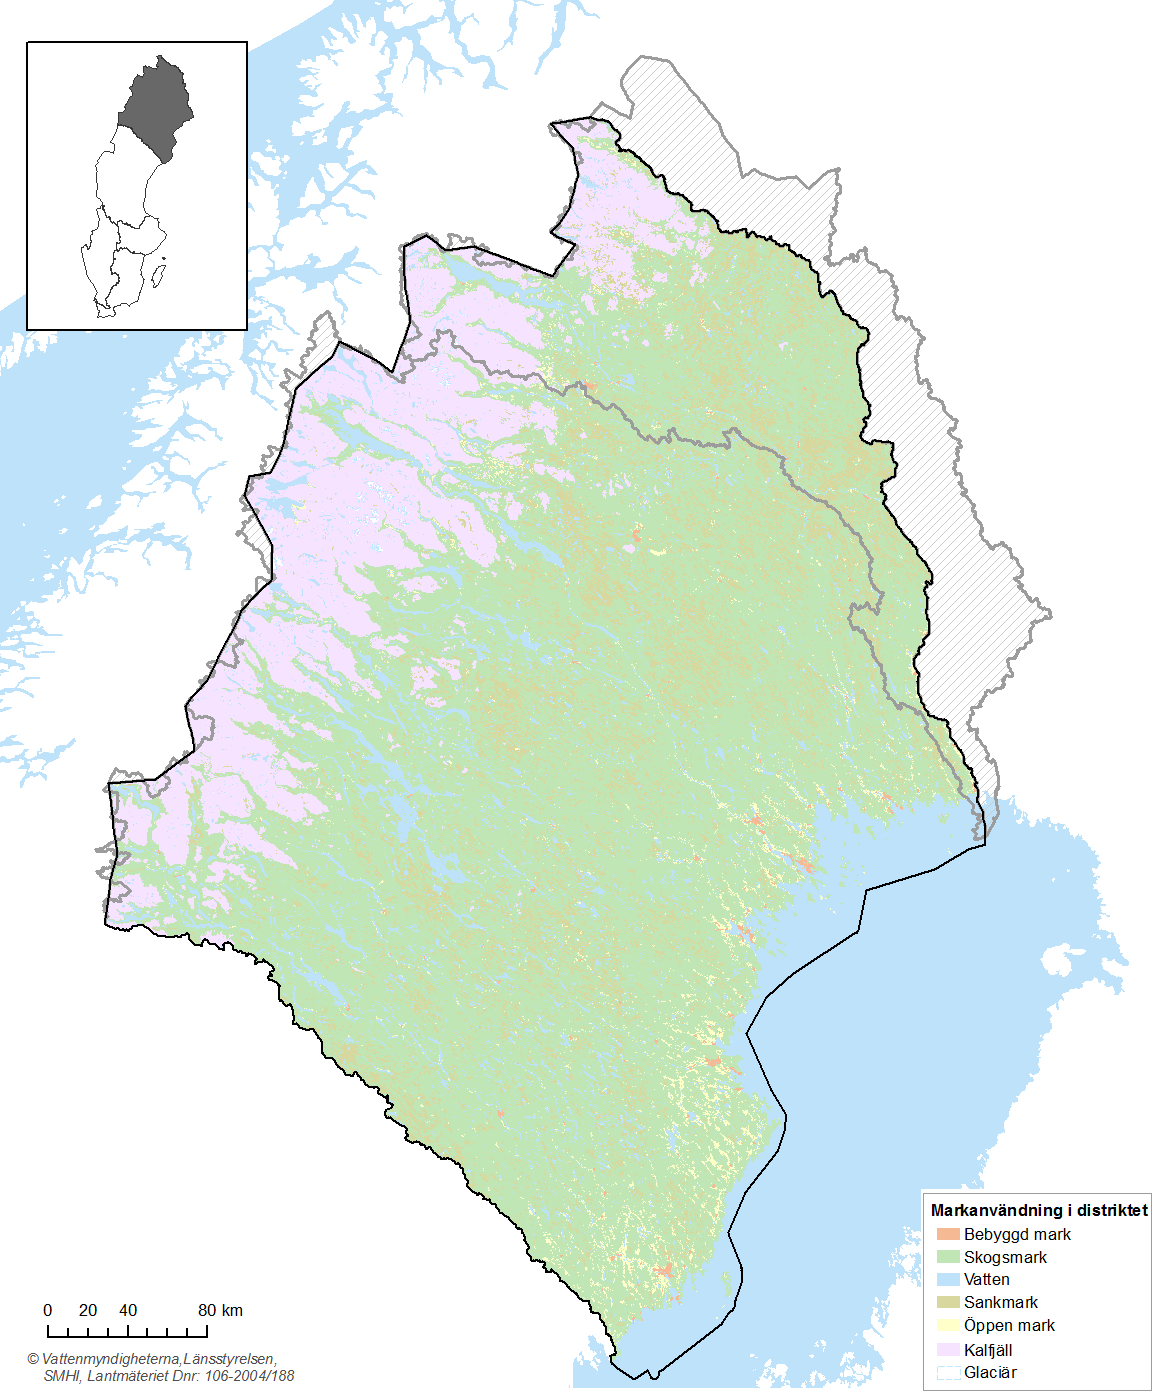 4 Conditions in the water district The Bothnian Bay water district makes up the most northerly part of Sweden and comprises 30 main river basins in the county of Norrbotten and the most of the county